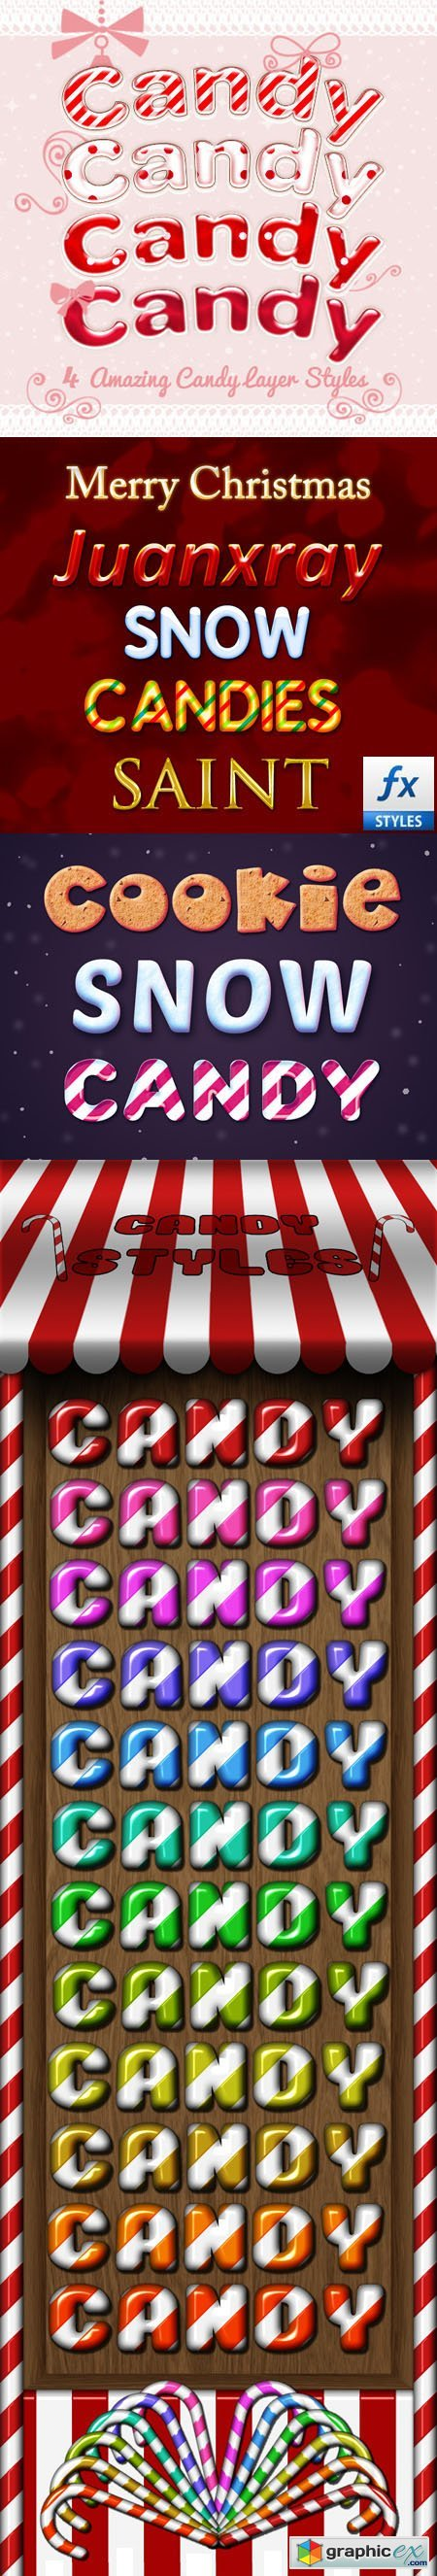 Candy Photoshop Styles and Text Effects